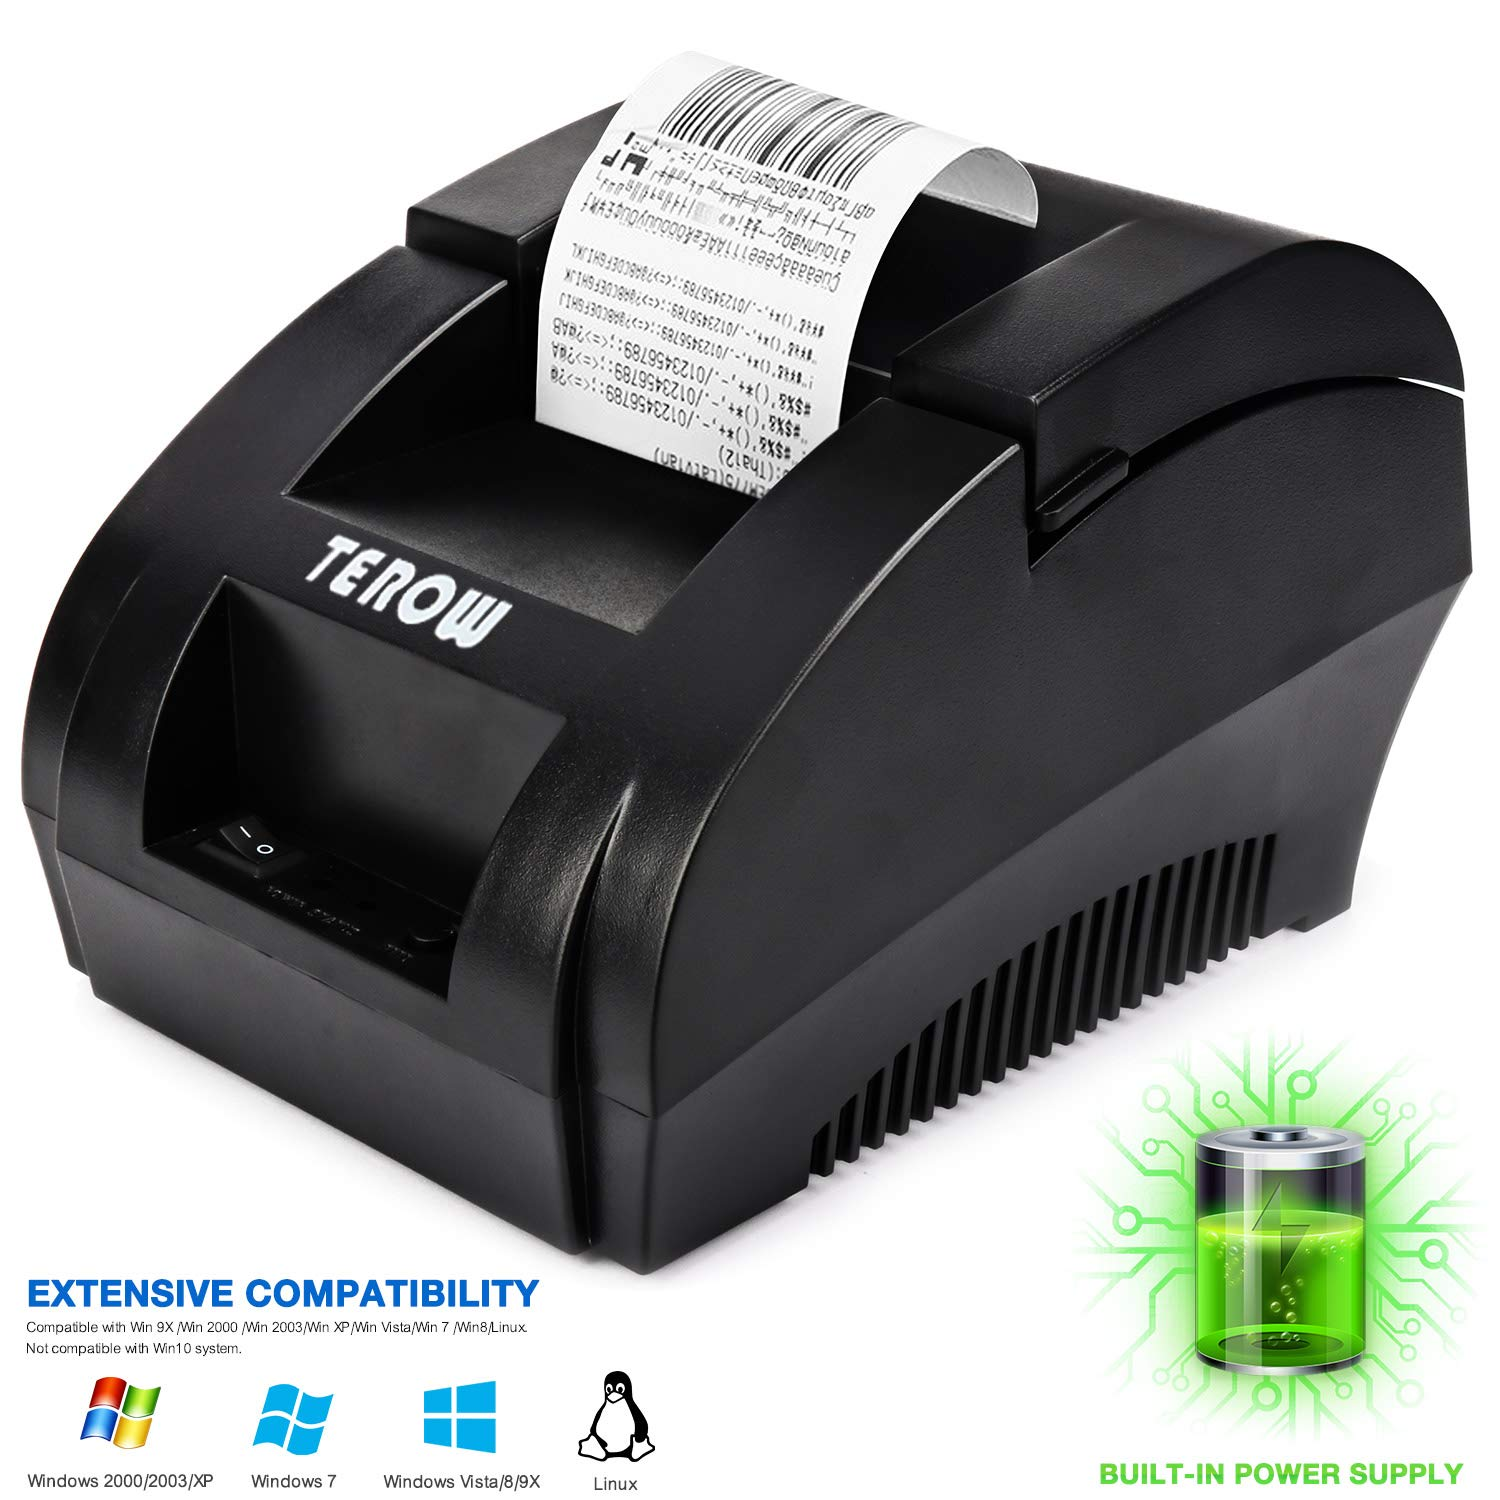 USB Thermal Receipt Printer TEROW 58mm Mini Small Portable Label Printer  with High Speed Printing Compatible with ESC/POS Print Commands Set, Easy  to